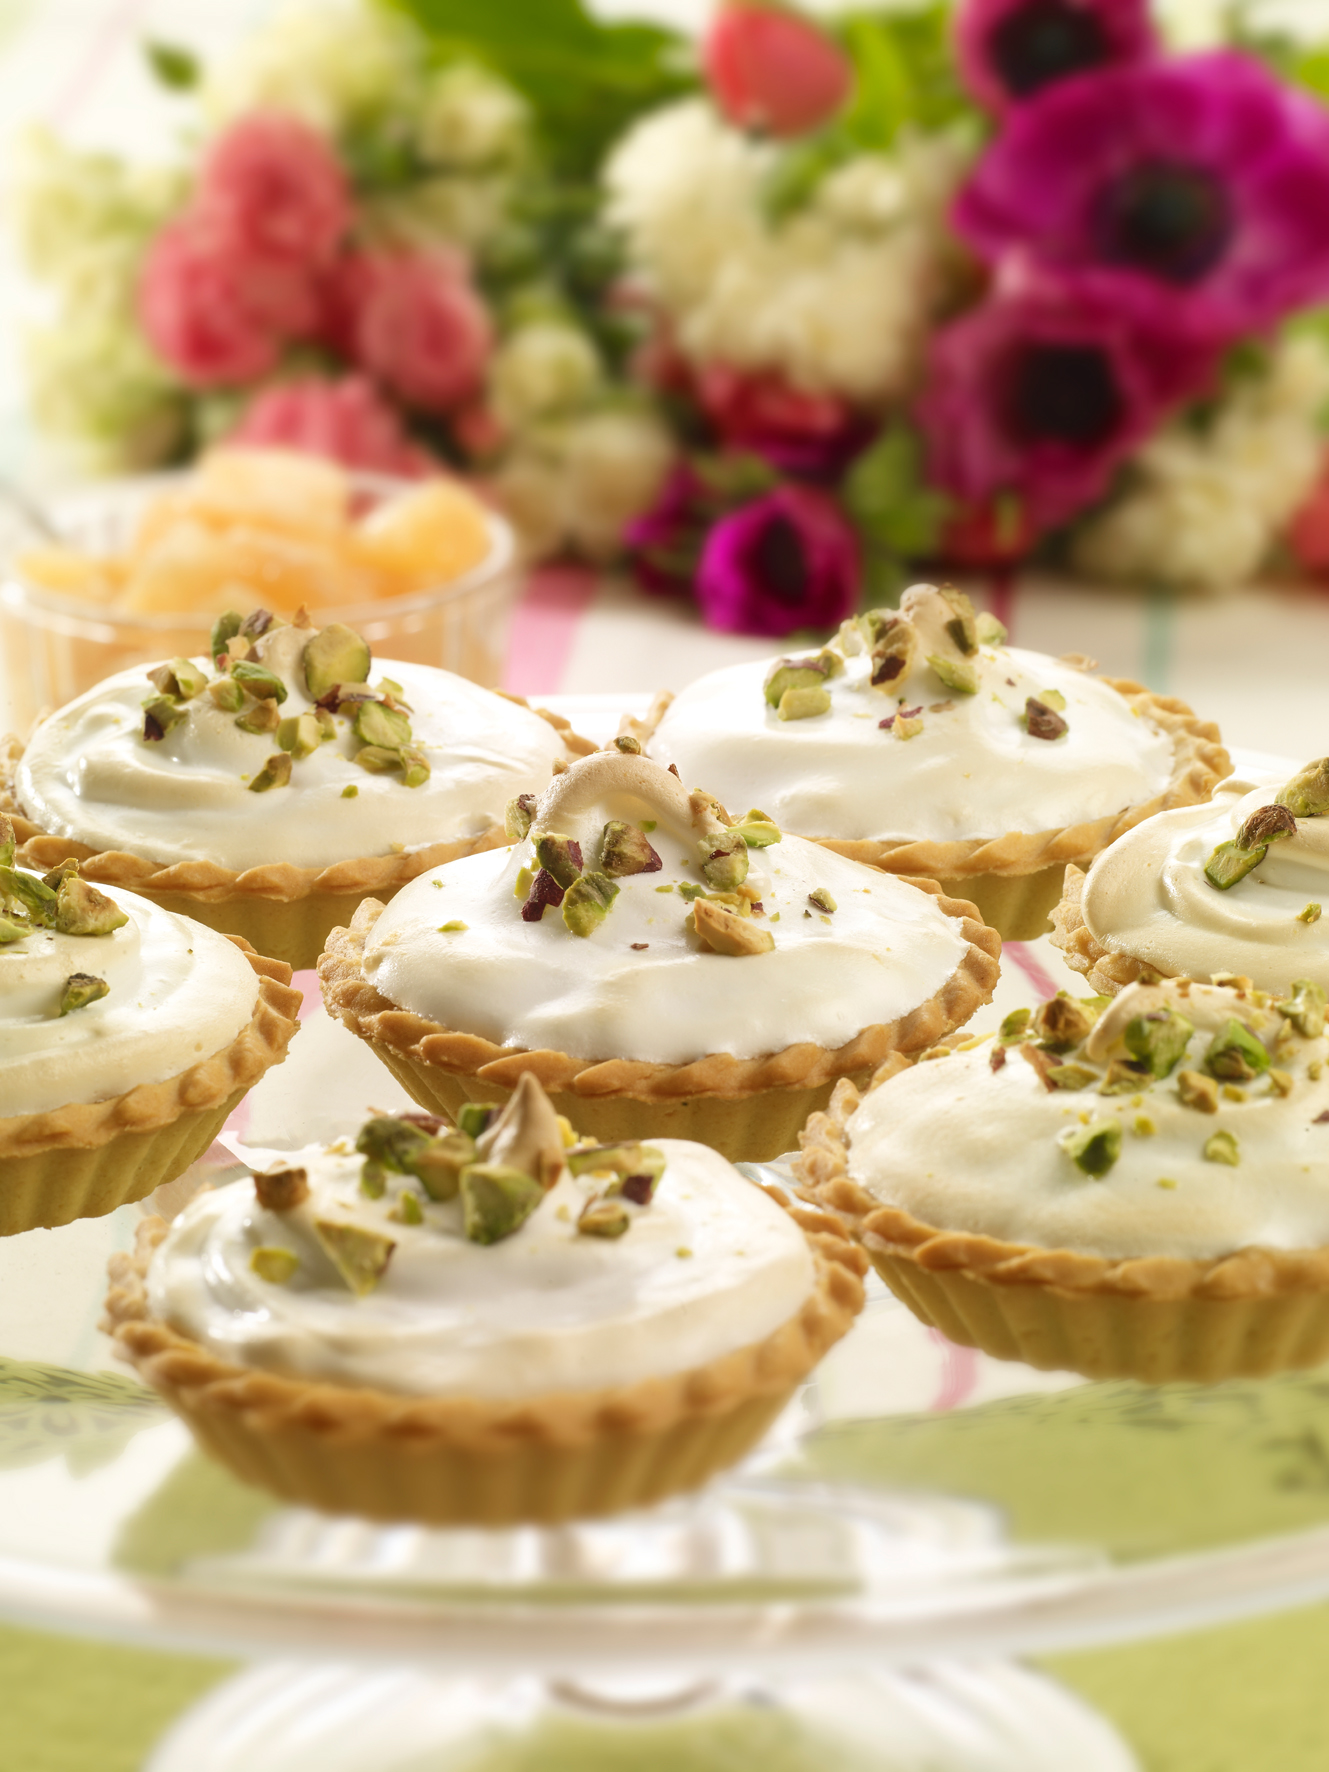 Miniature grapefruit meringue pies picture